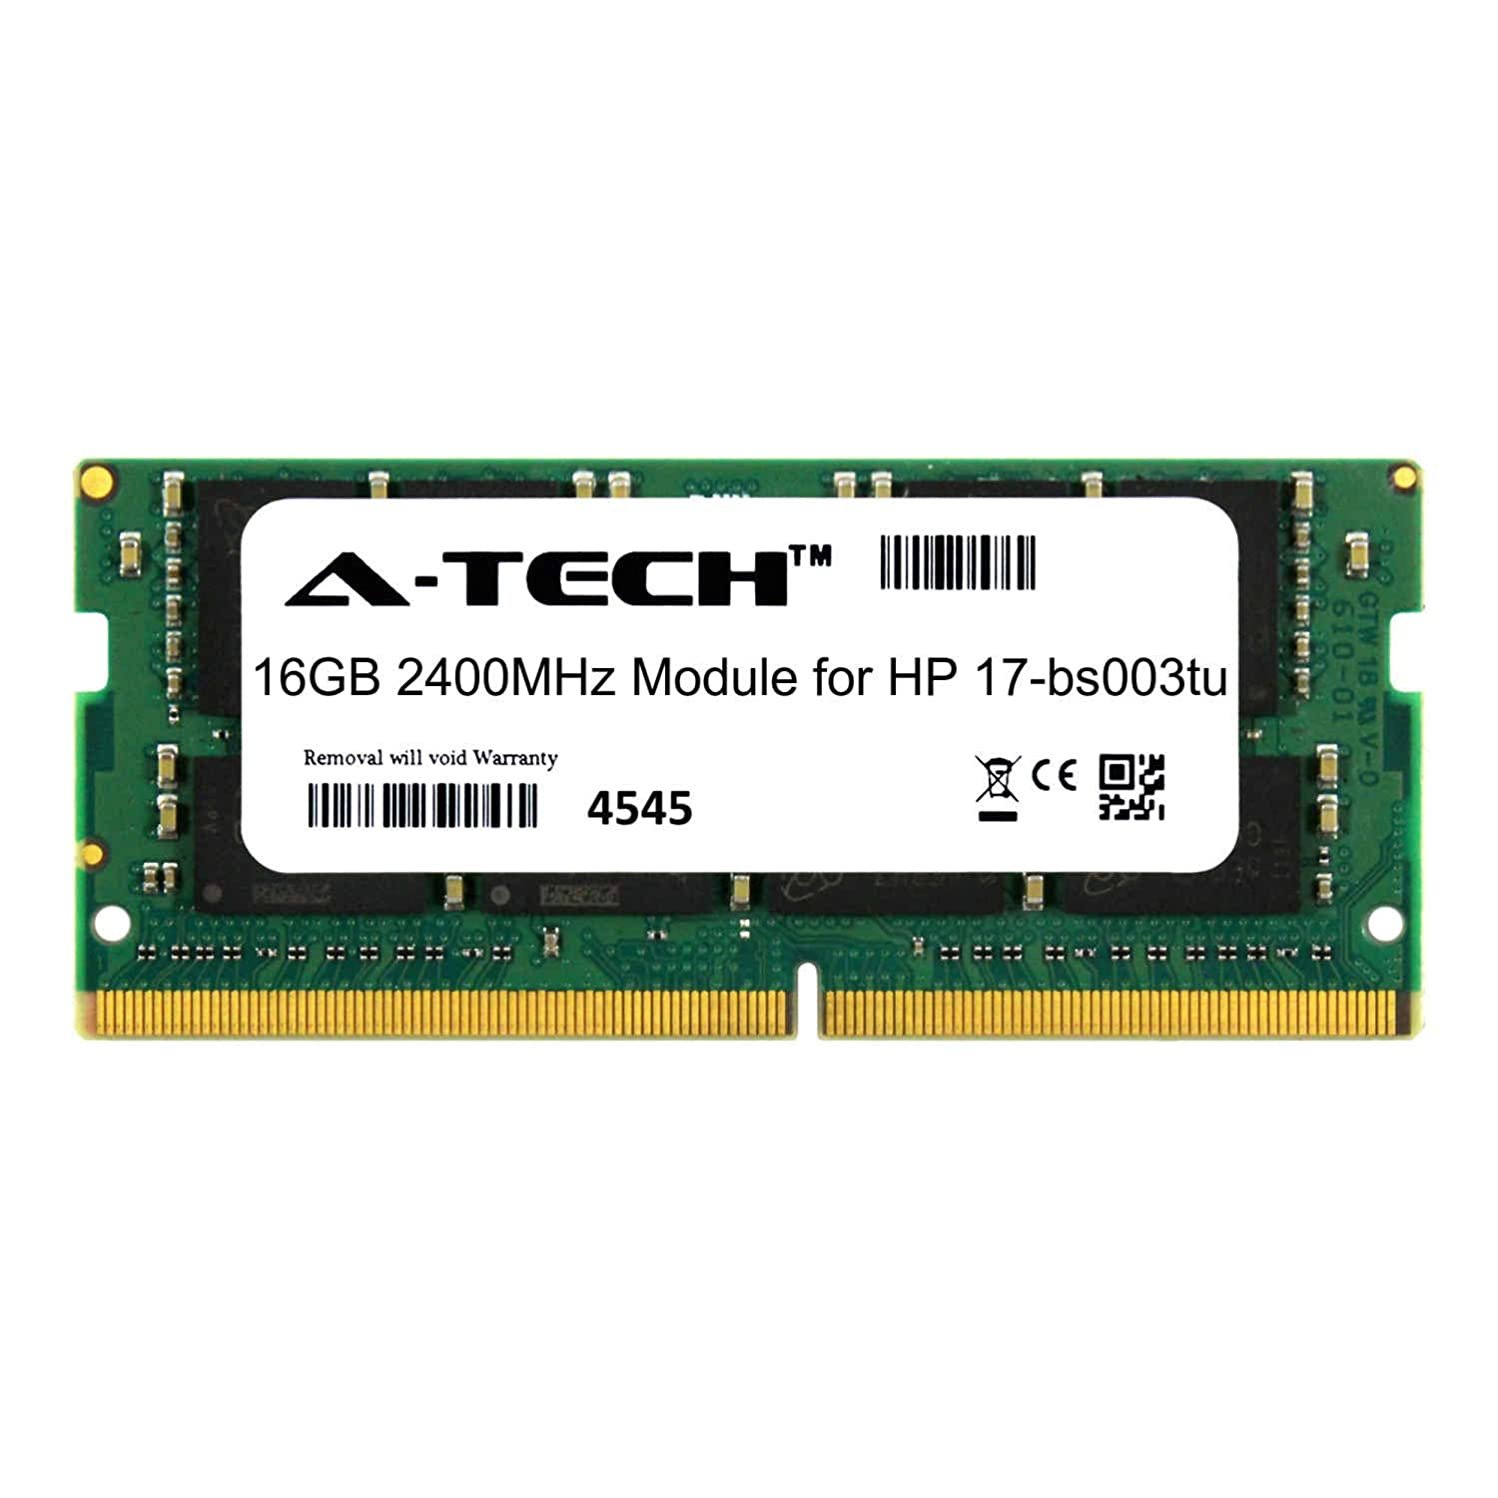 A-Tech 16GB Module for HP 17-bs003tu Laptop & Notebook Compatible DDR4 2400Mhz Memory Ram (ATMS382478A25831X1)